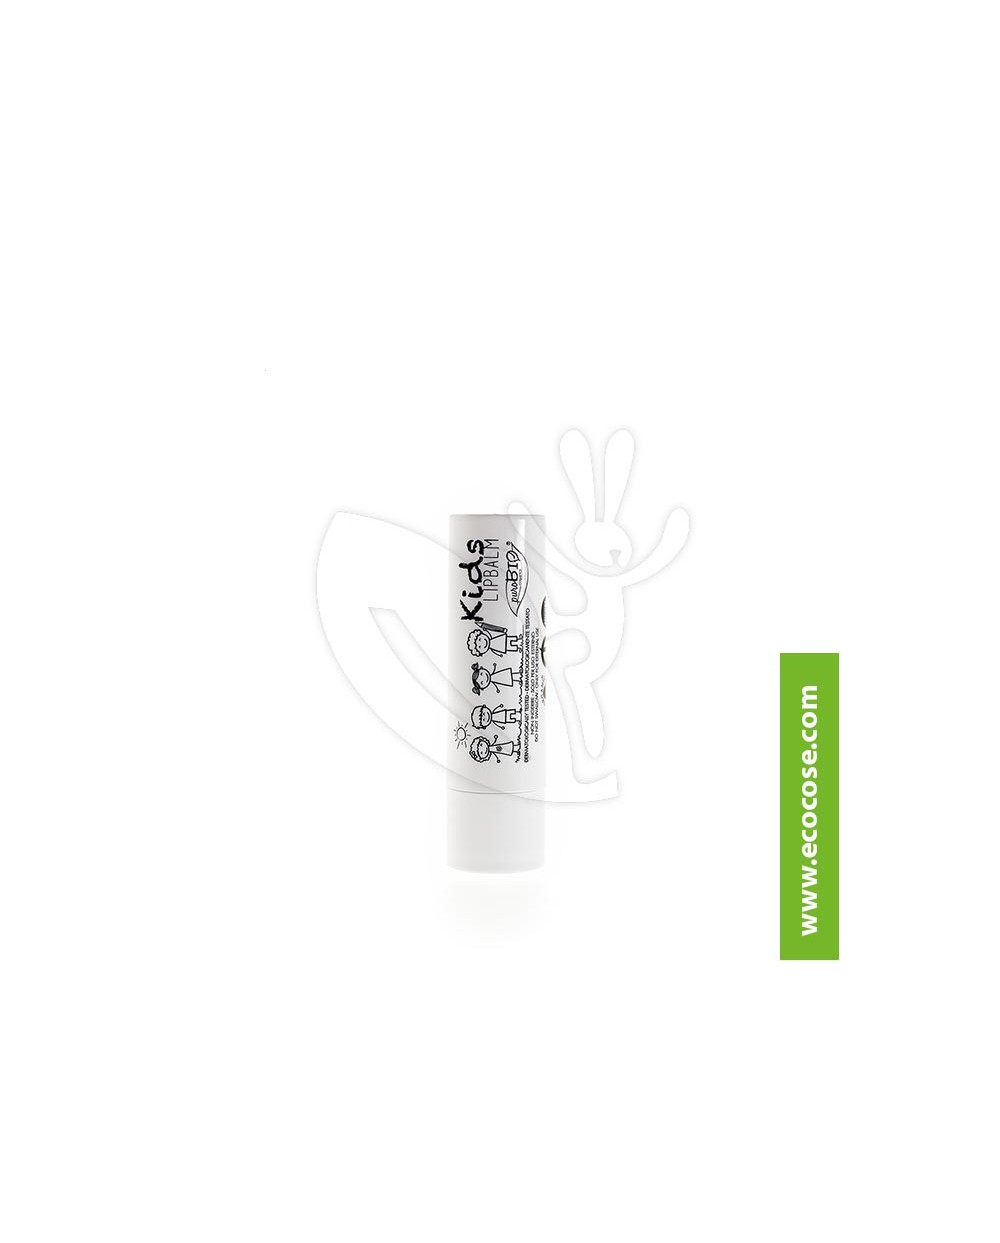 PuroBIO Cosmetics - Lipbalm KIDS *NEW*